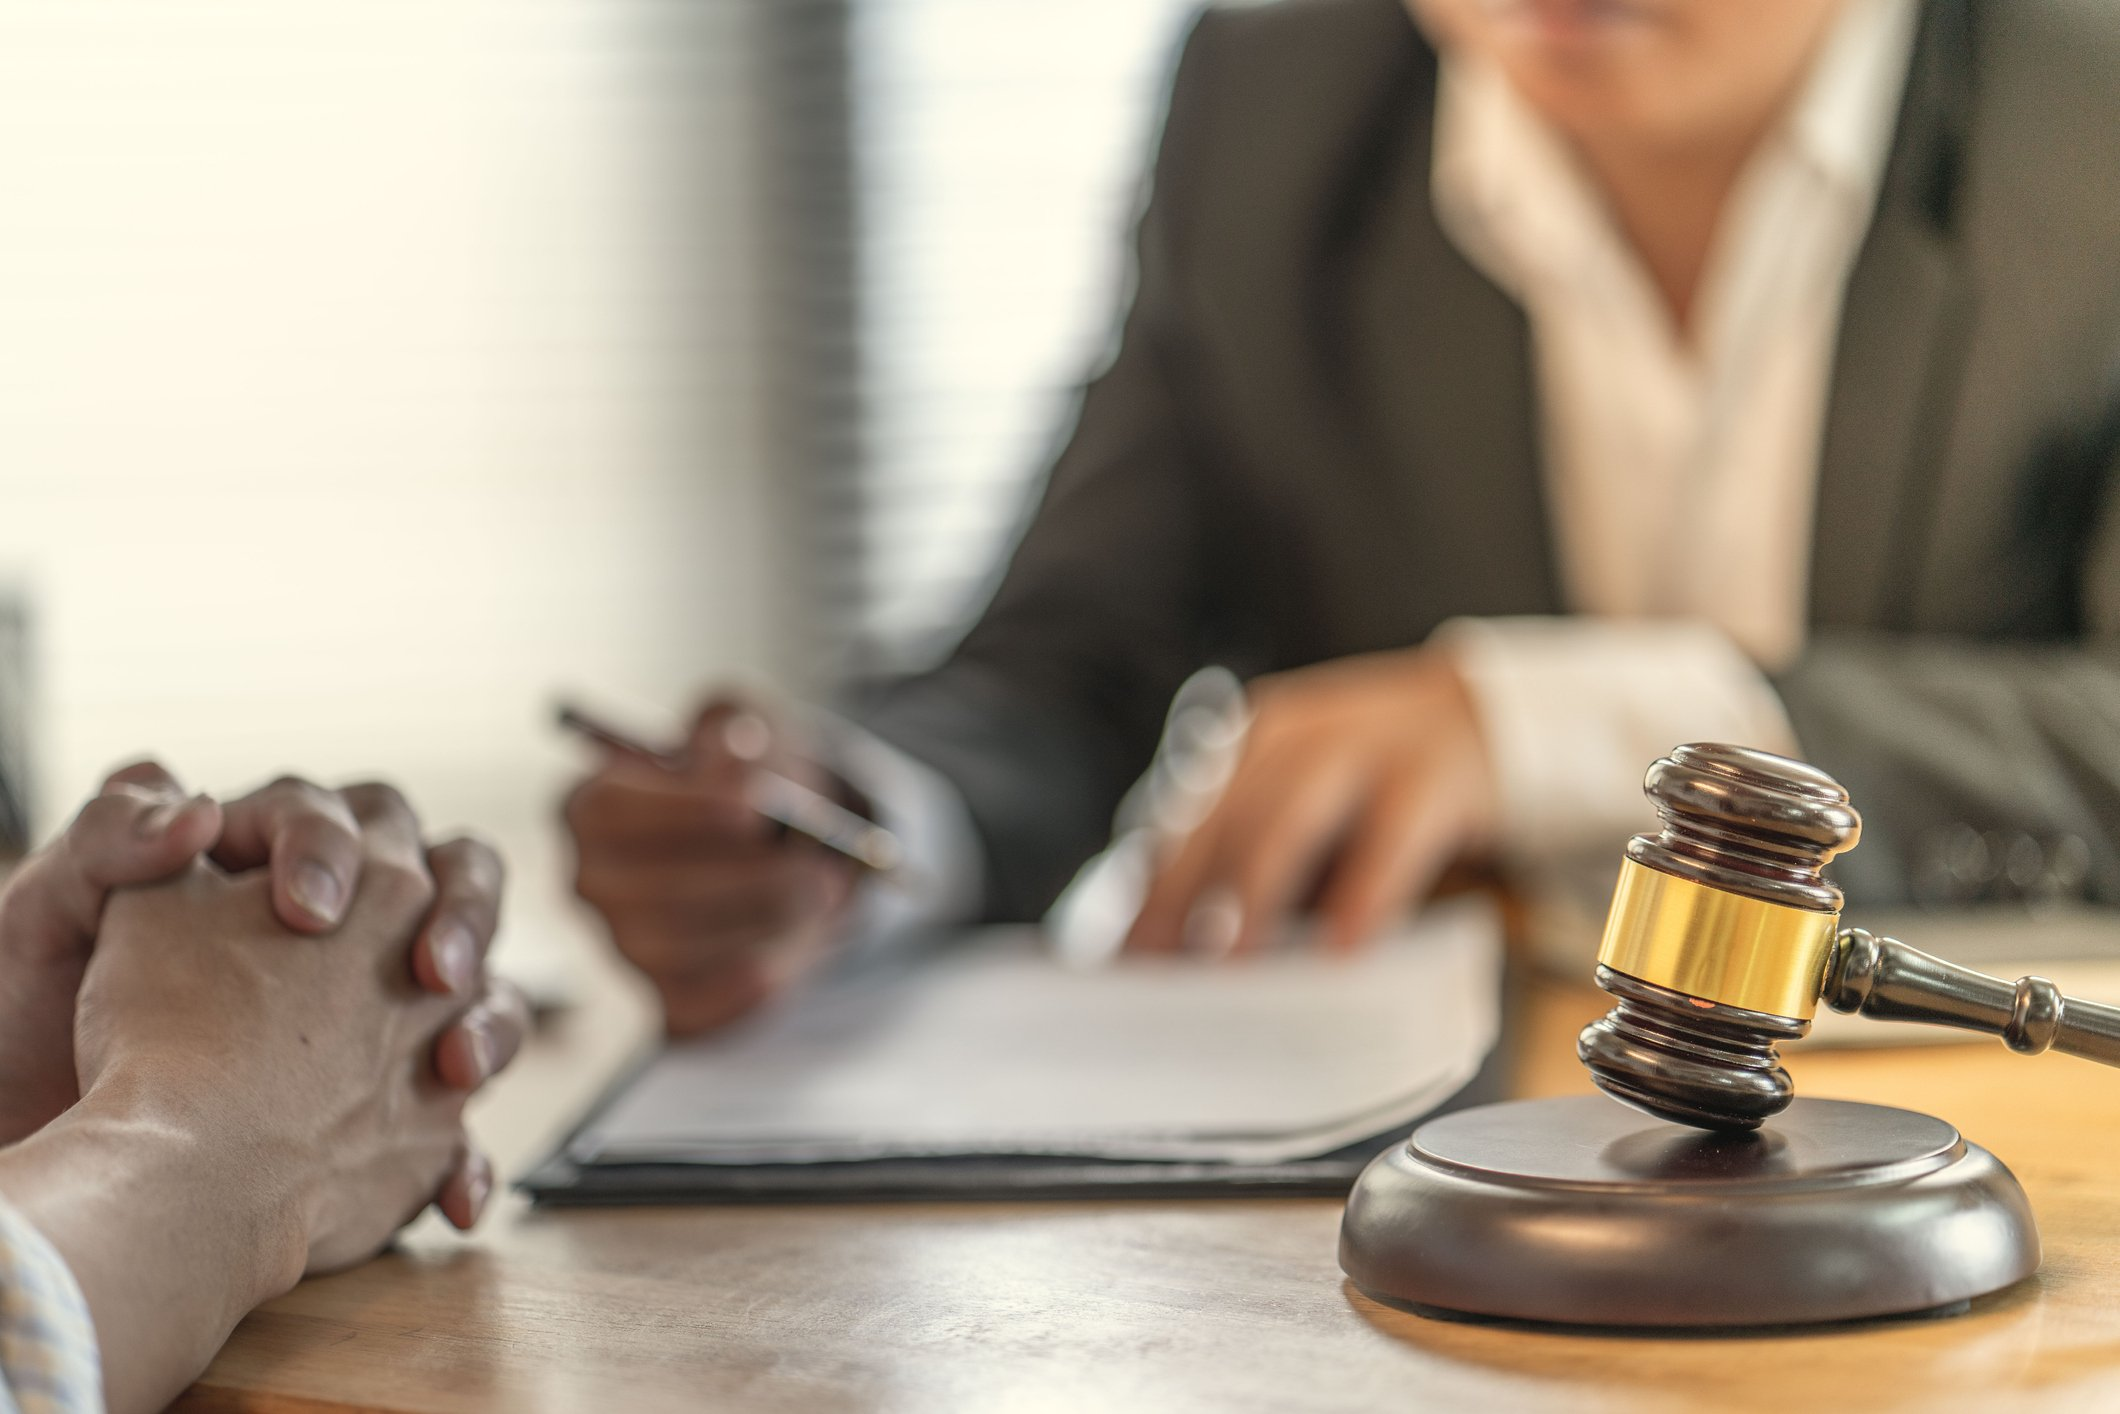 7 Mistakes That Lead to Employee Lawsuits (and How to Avoid Them)